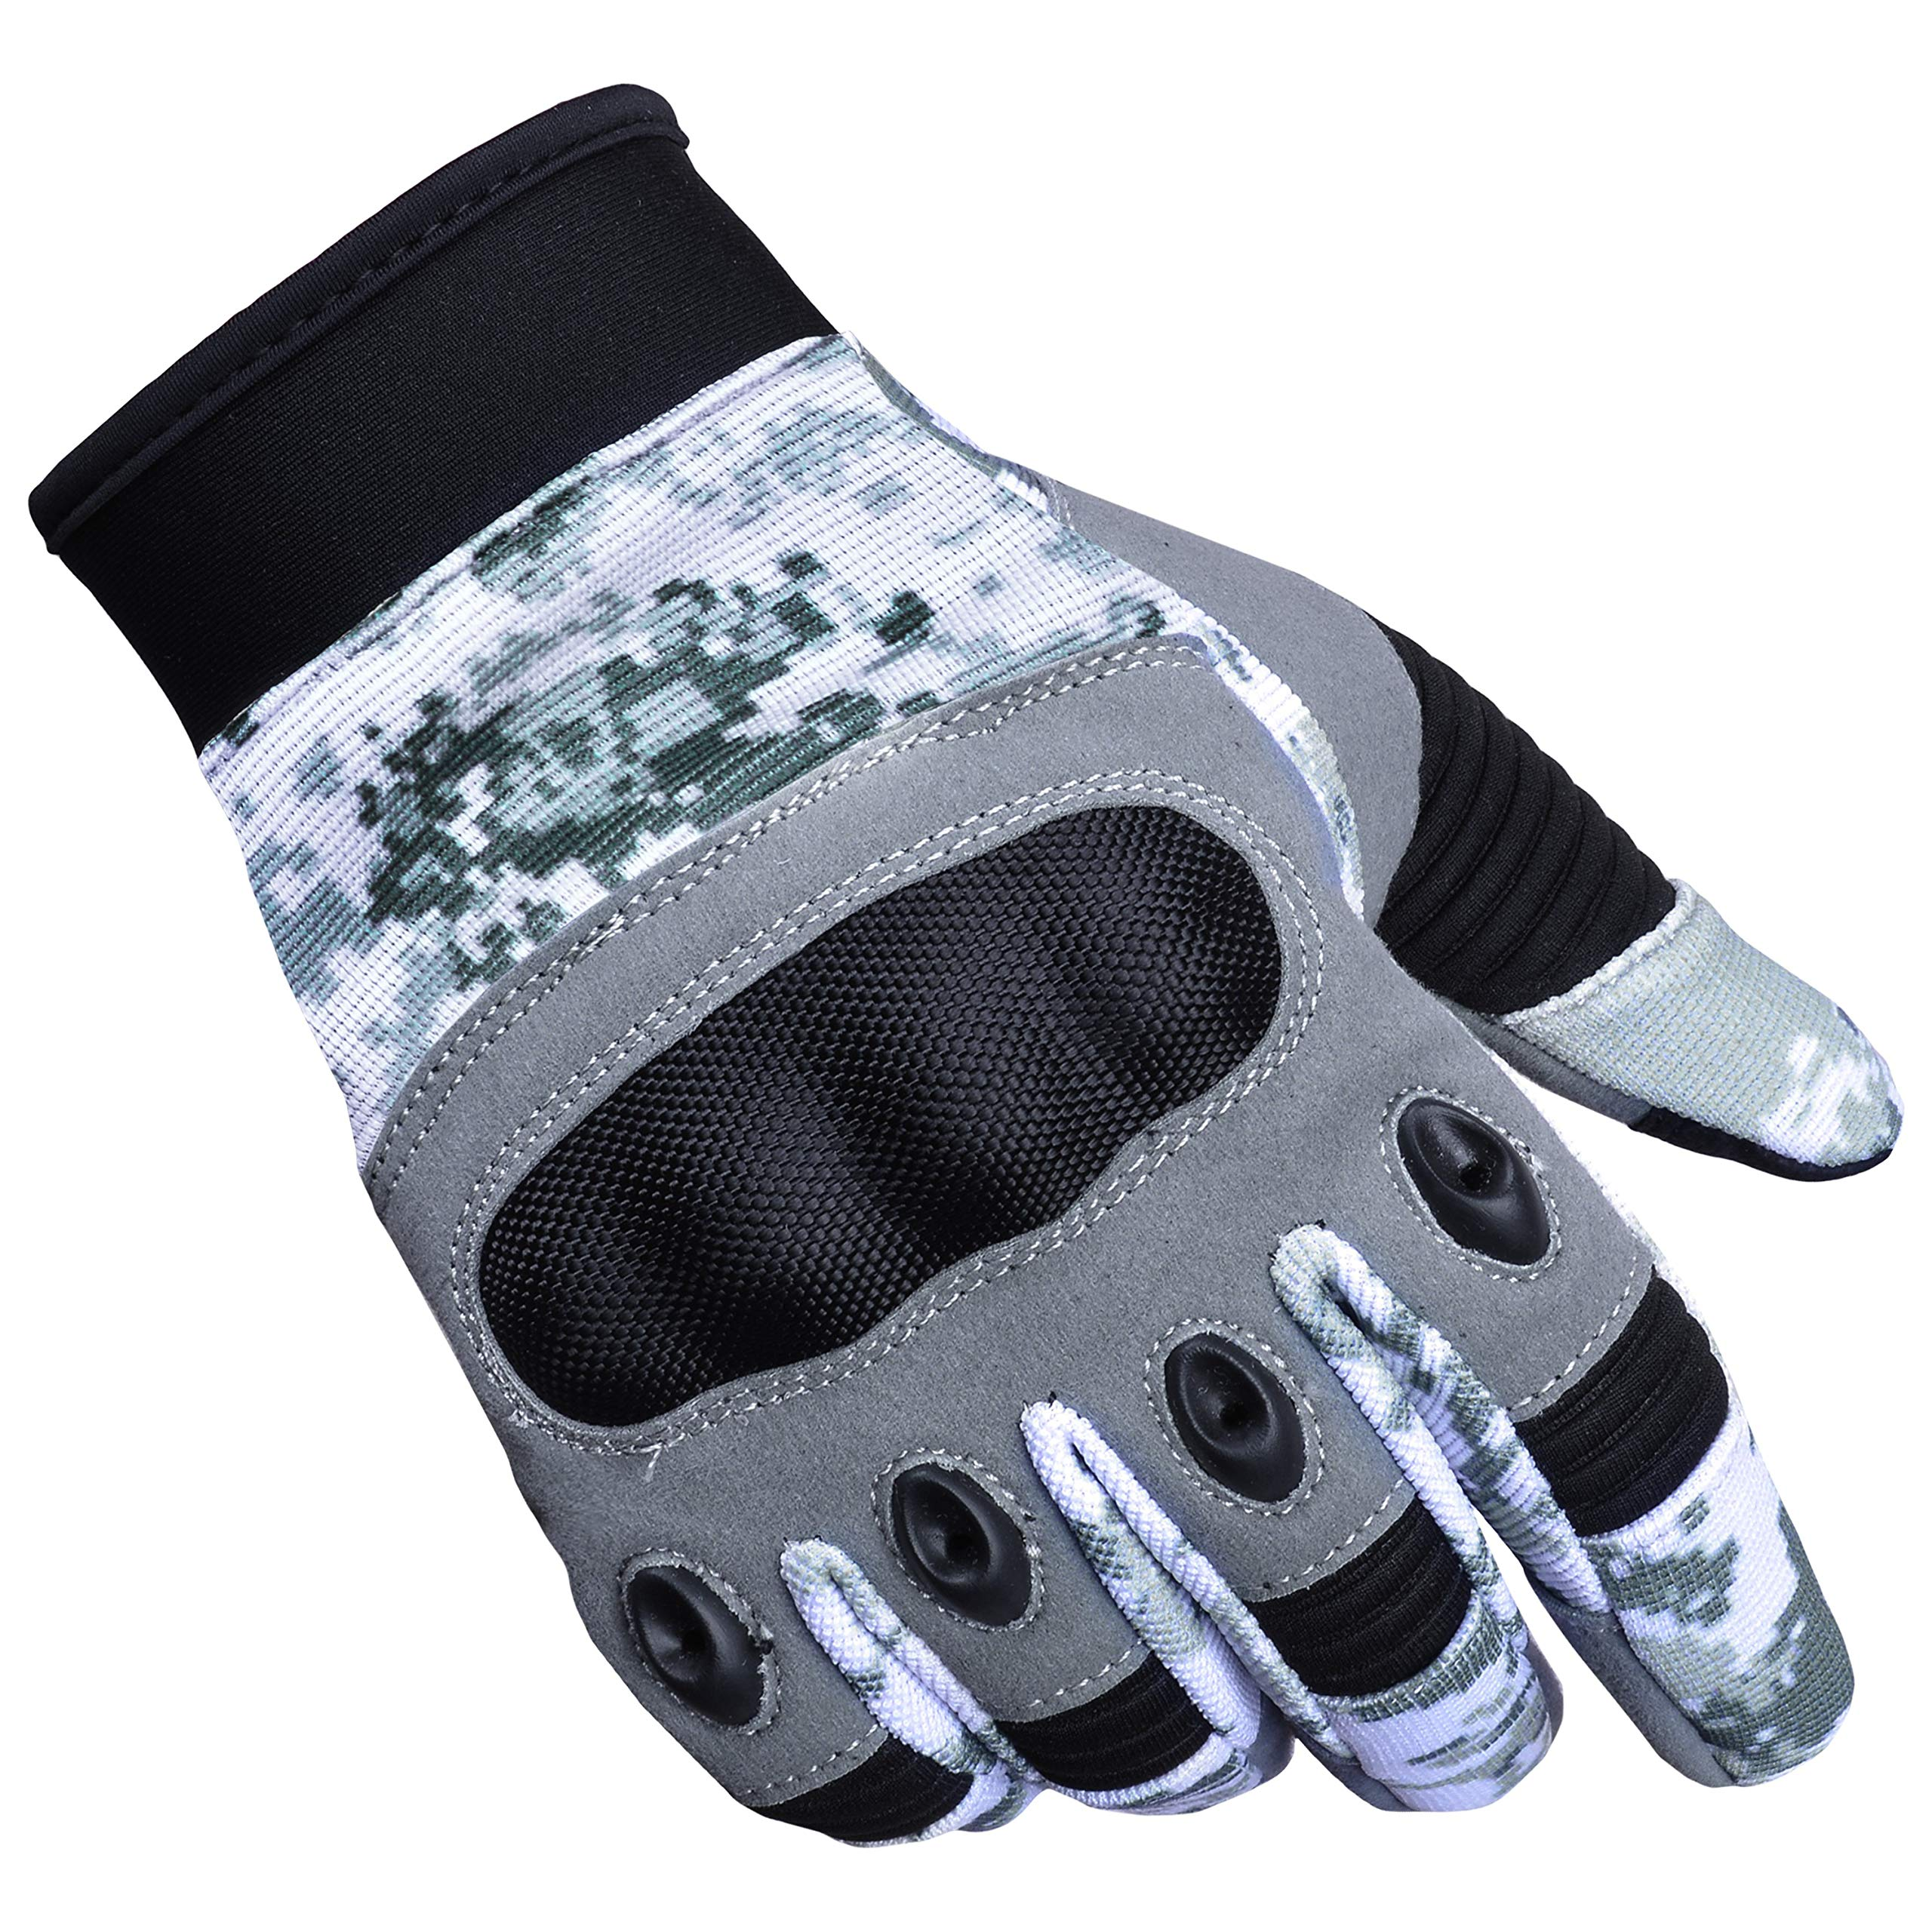 Zimco Cycle Wear Protective Hard Knuckle Touch Screen Gloves Cycling Motorcycle Tactical Gloves for Shooting, Hunting, Hiking, Paintball, Motorbike, Safety, Working Sports Gloves (Grey Camo, XL) by Zimco Cycle Wear